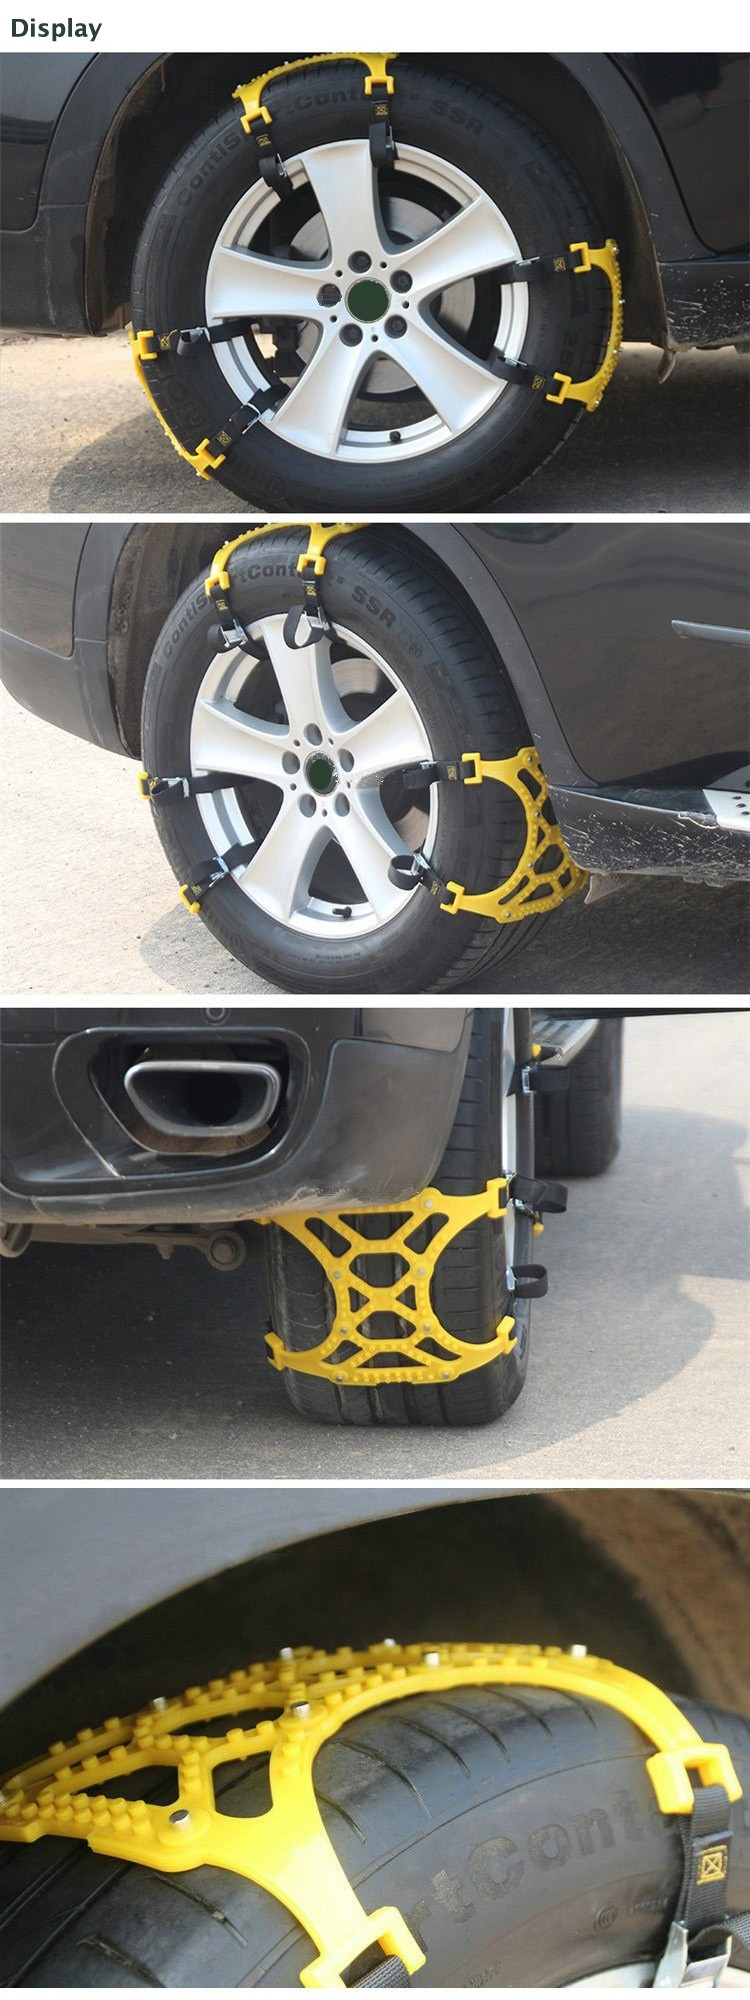 Car Tire Skid Chain Display